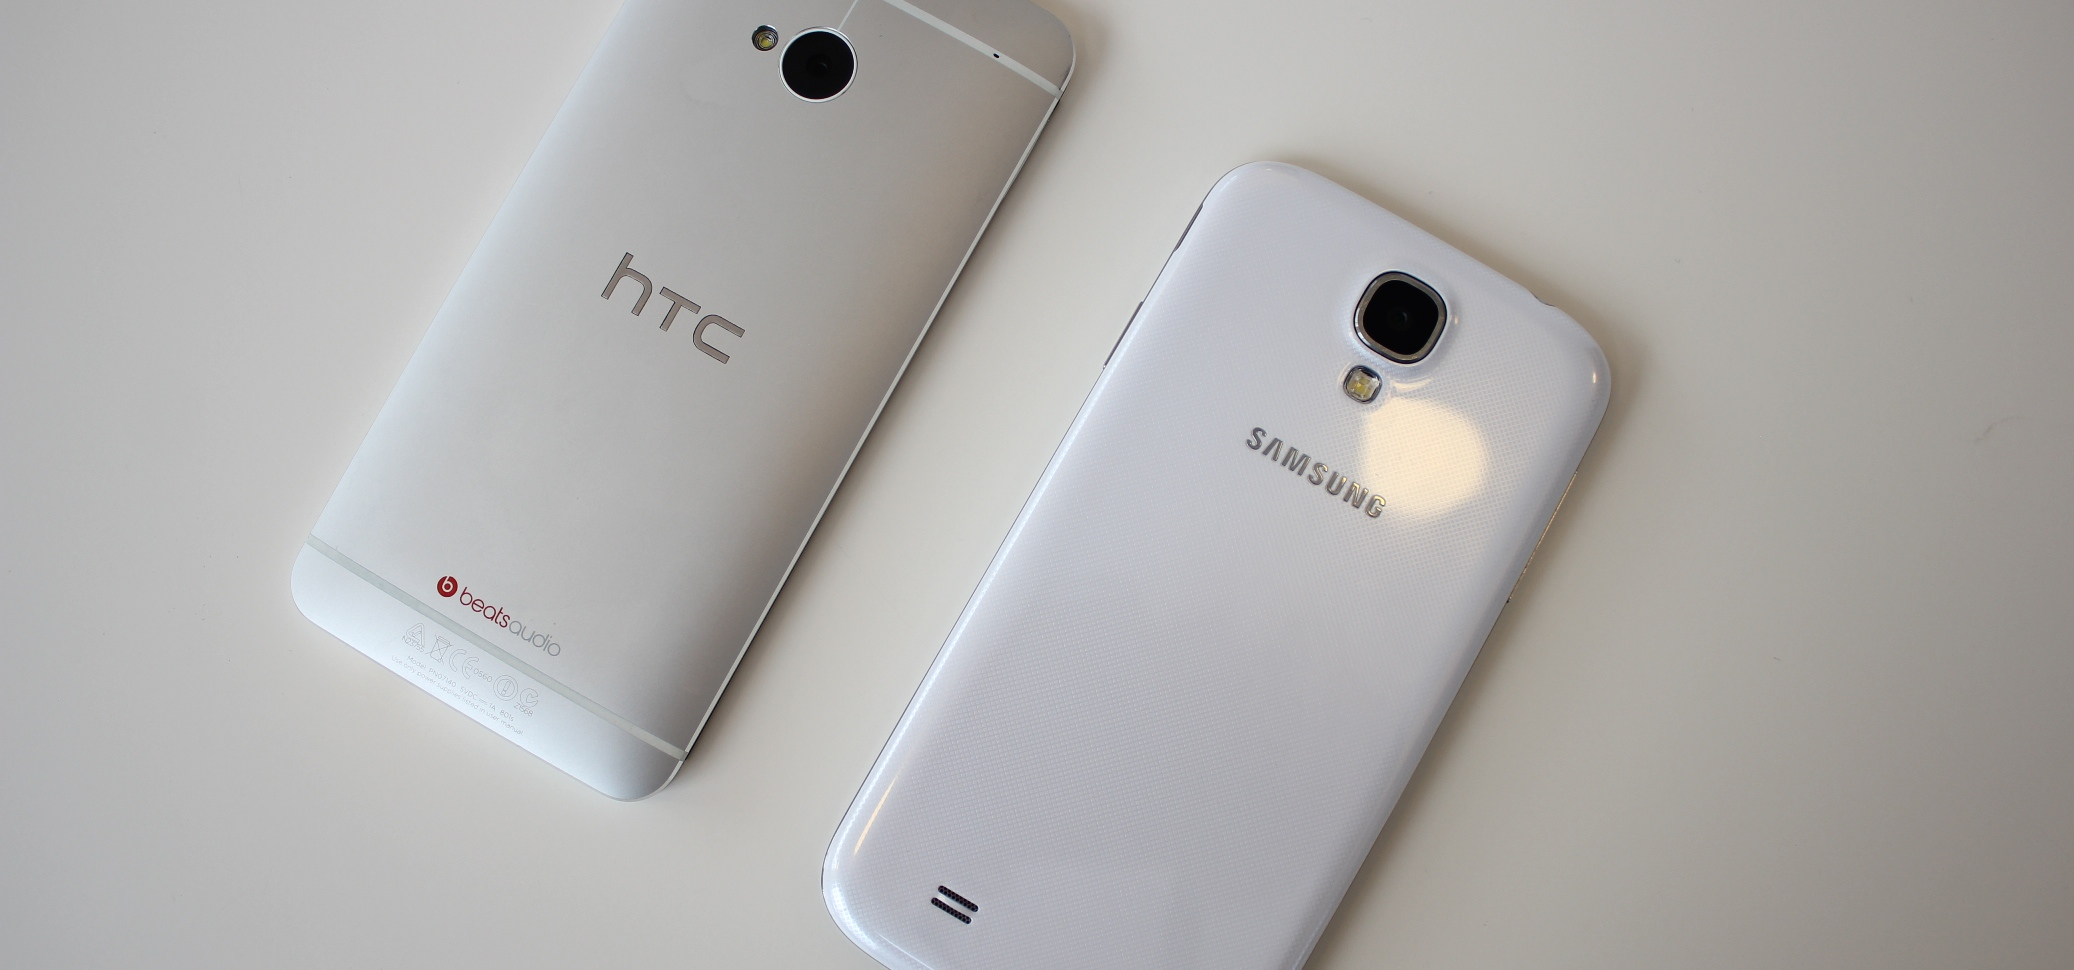 IMG 0981 Flagship phone shootout: Samsung Galaxy S4 vs HTC One